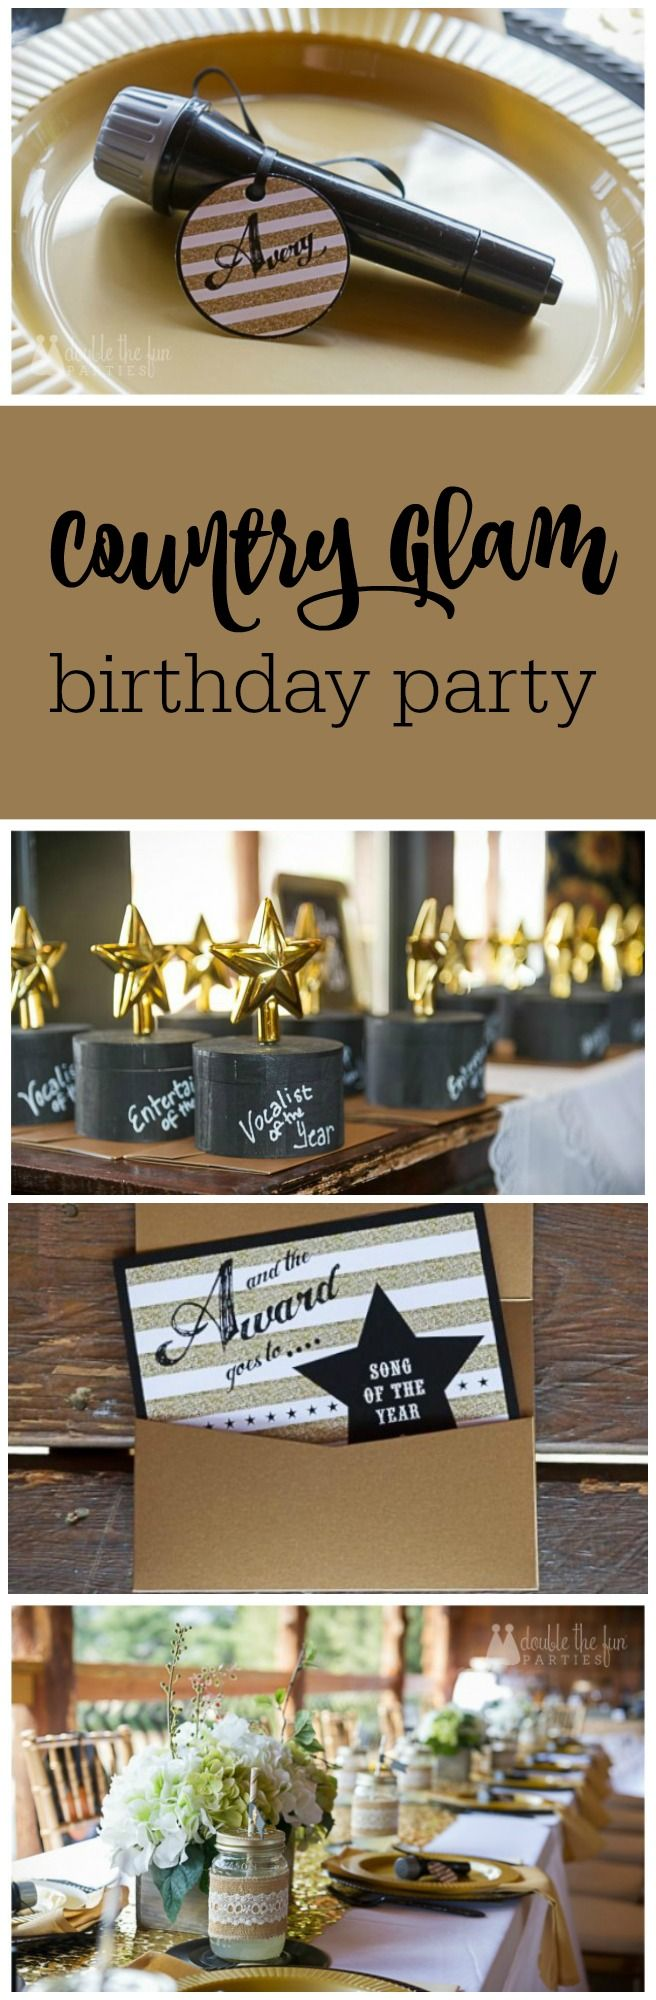 112 Best Country Glam Party Images On Pinterest Birthdays